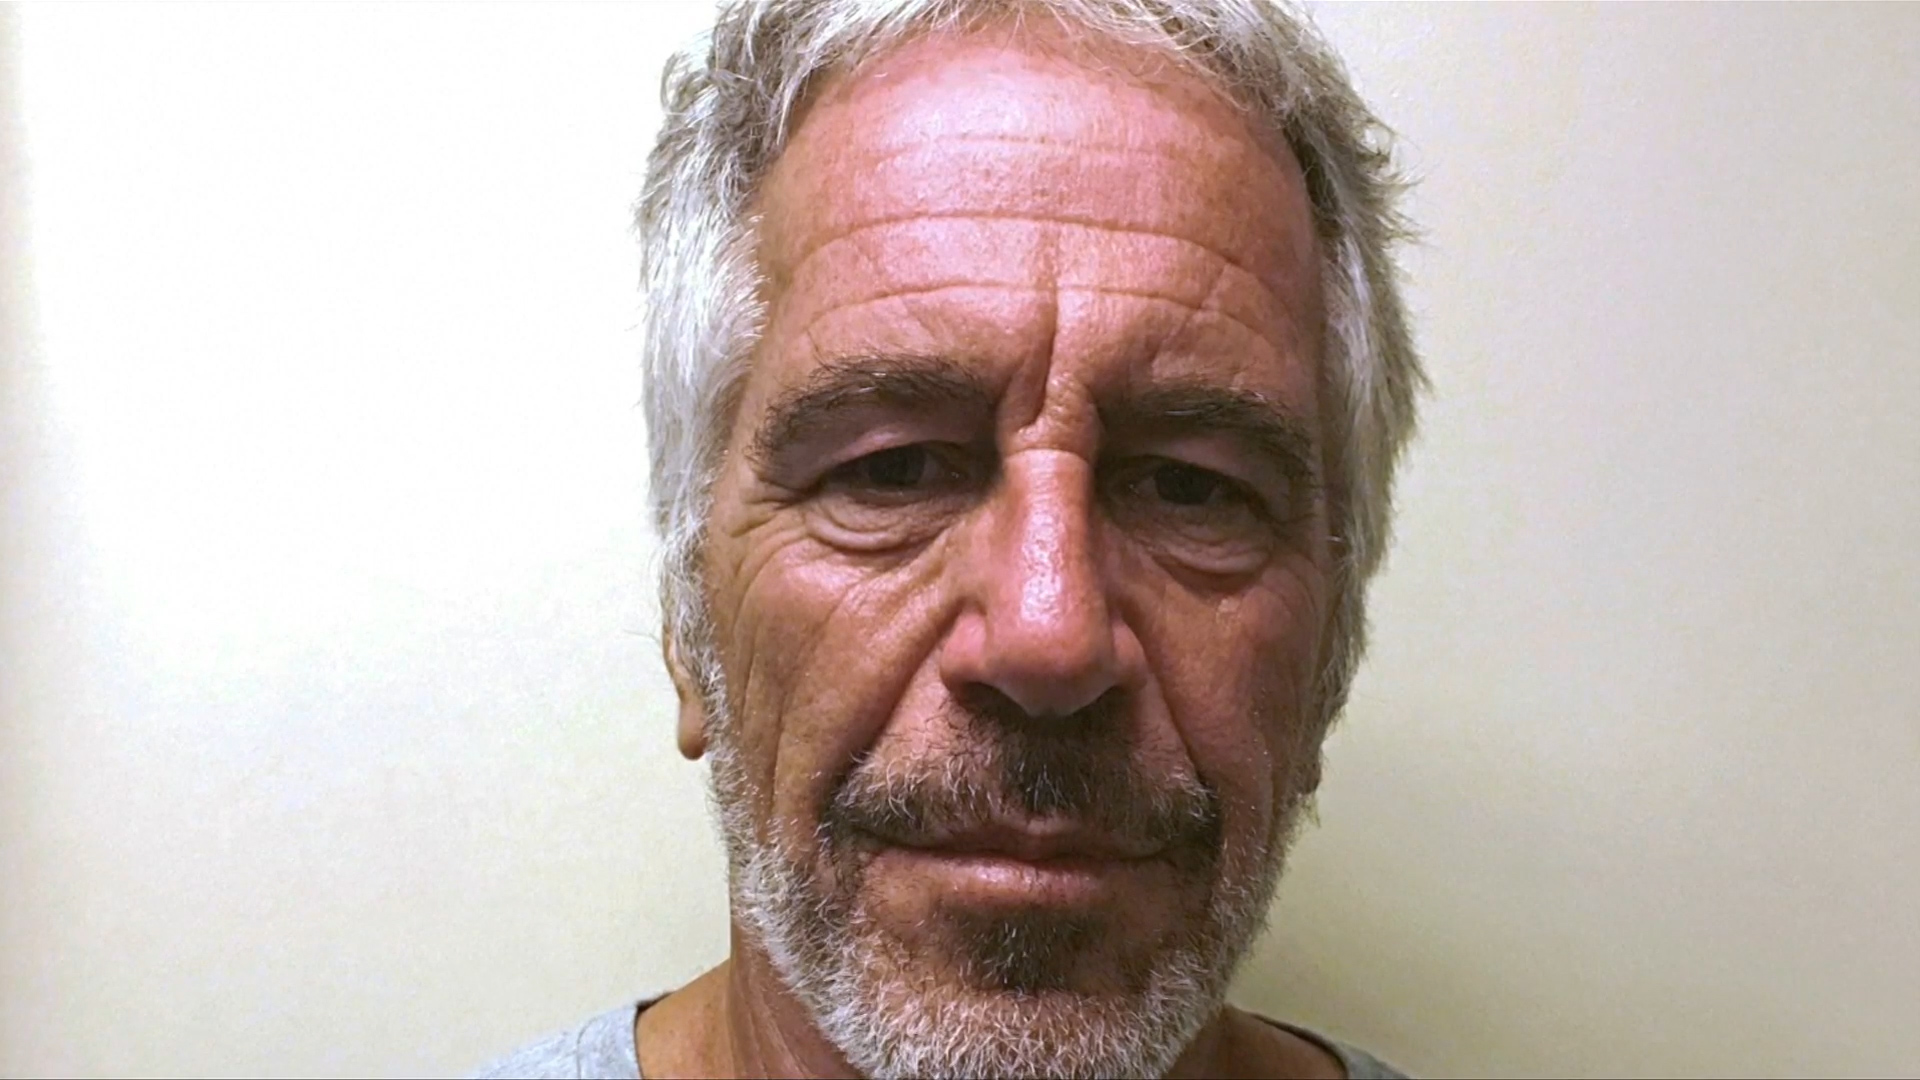 Princess Diana named in Jeffrey Epstein documents